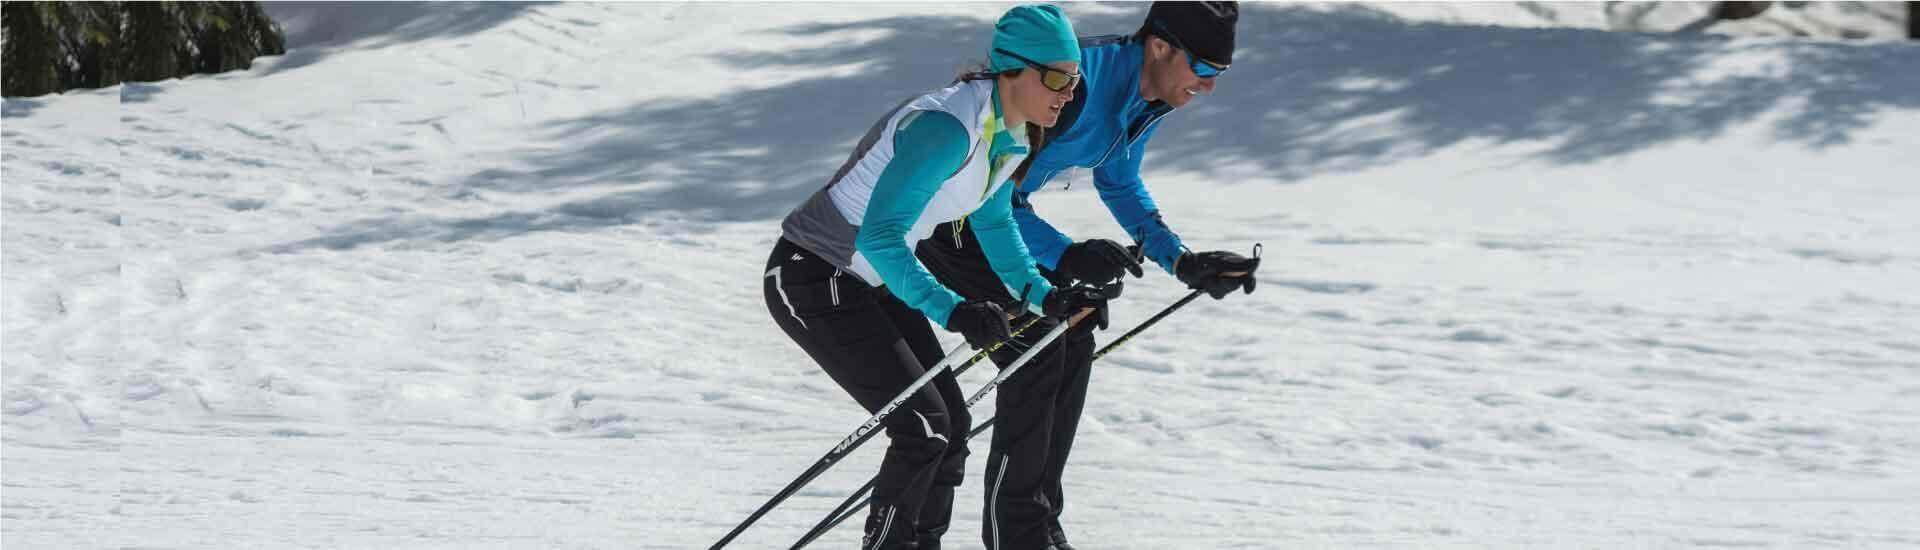 How to Choose Your Ski Poles?